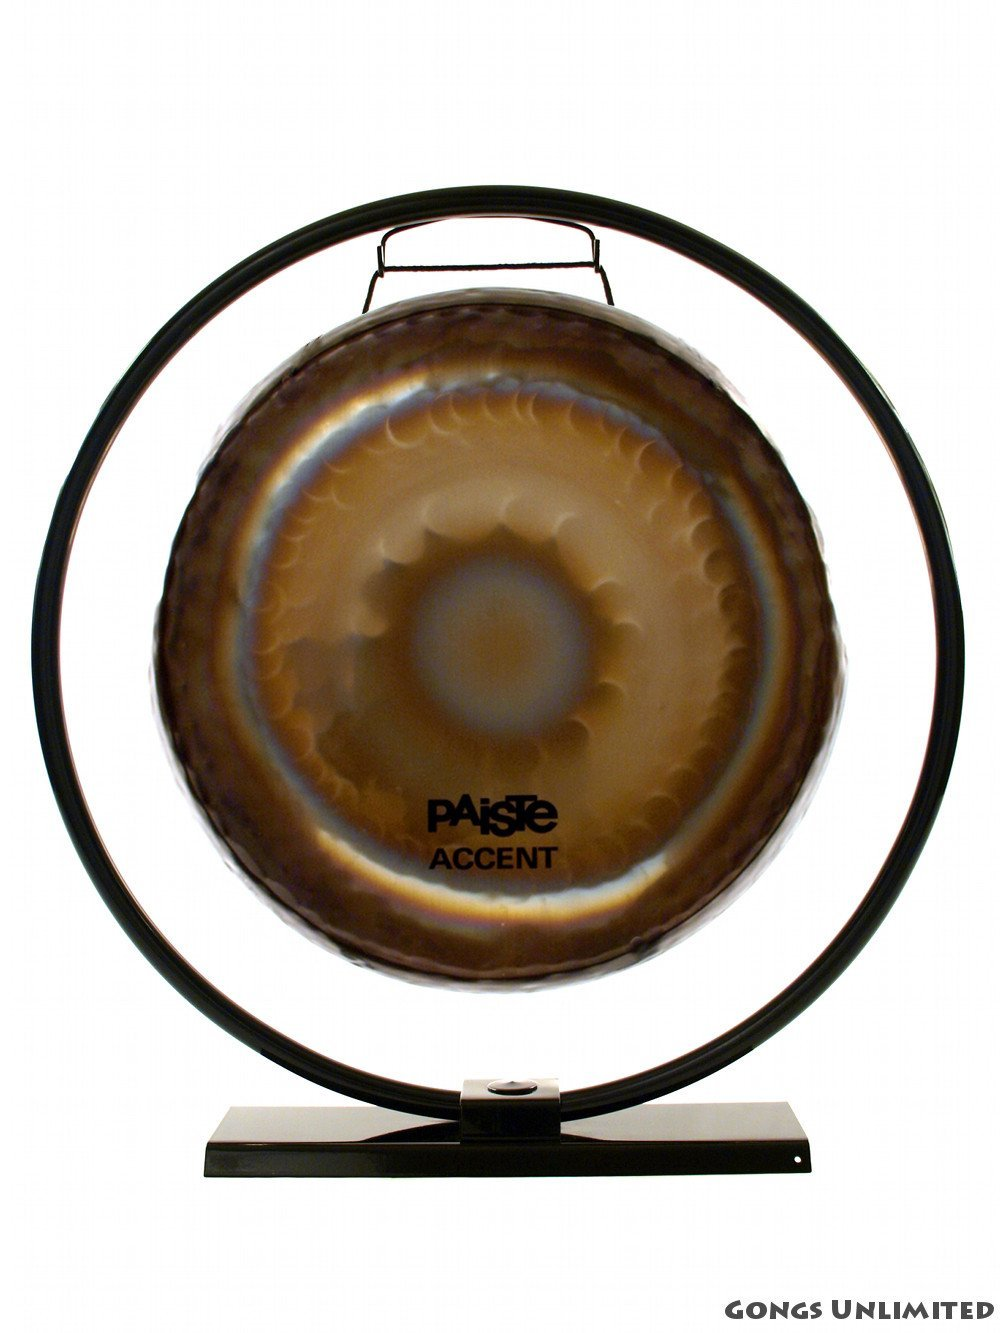 Paiste Accent Gongs on Stands